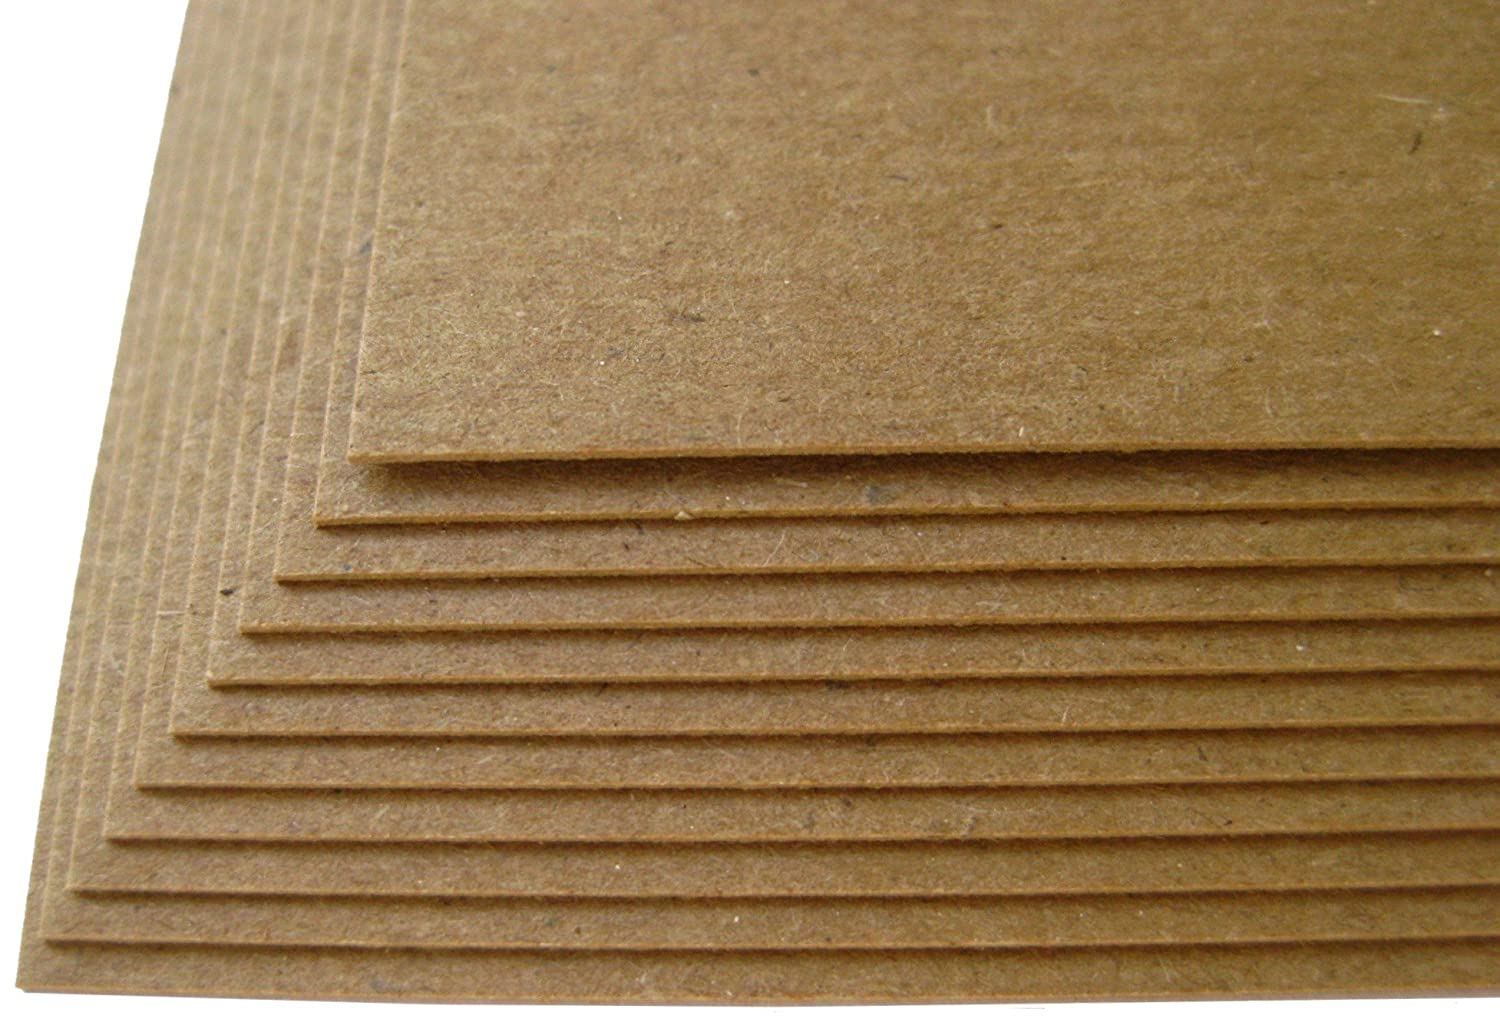 200 Sheets Chipboard 20pt point 8.5 X 11 Inches Light Weight Letter Size .020 Caliper Thick Cardboard Craft|Ship Brown Kraft Paper Board